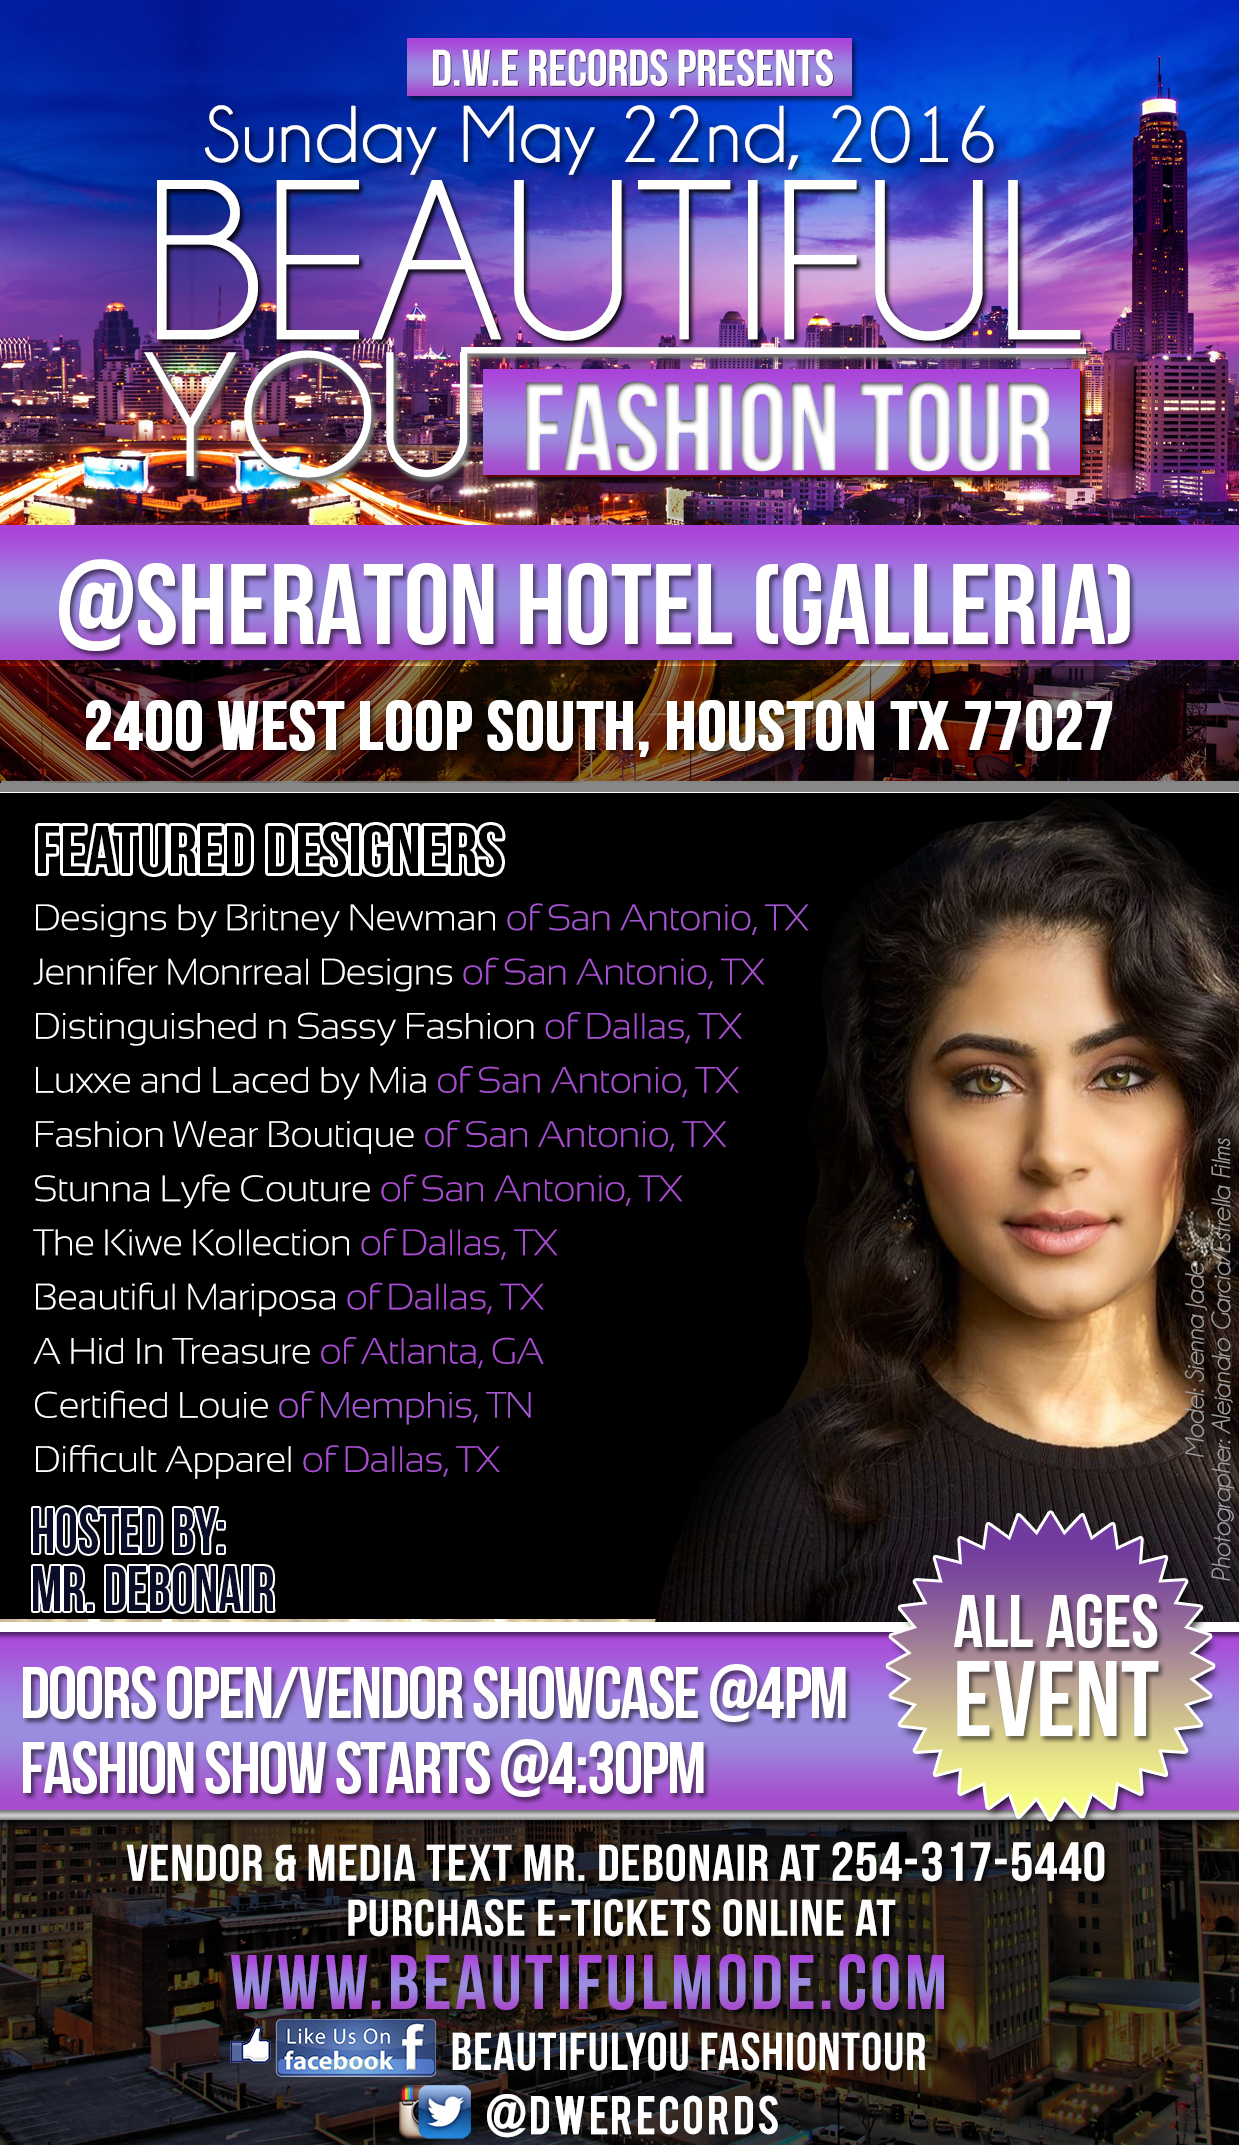 Houston, TX</a><br> by <a href='/profile/Mr-Debonair-BYFT-Director/'>Mr. Debonair BYFT Director</a>